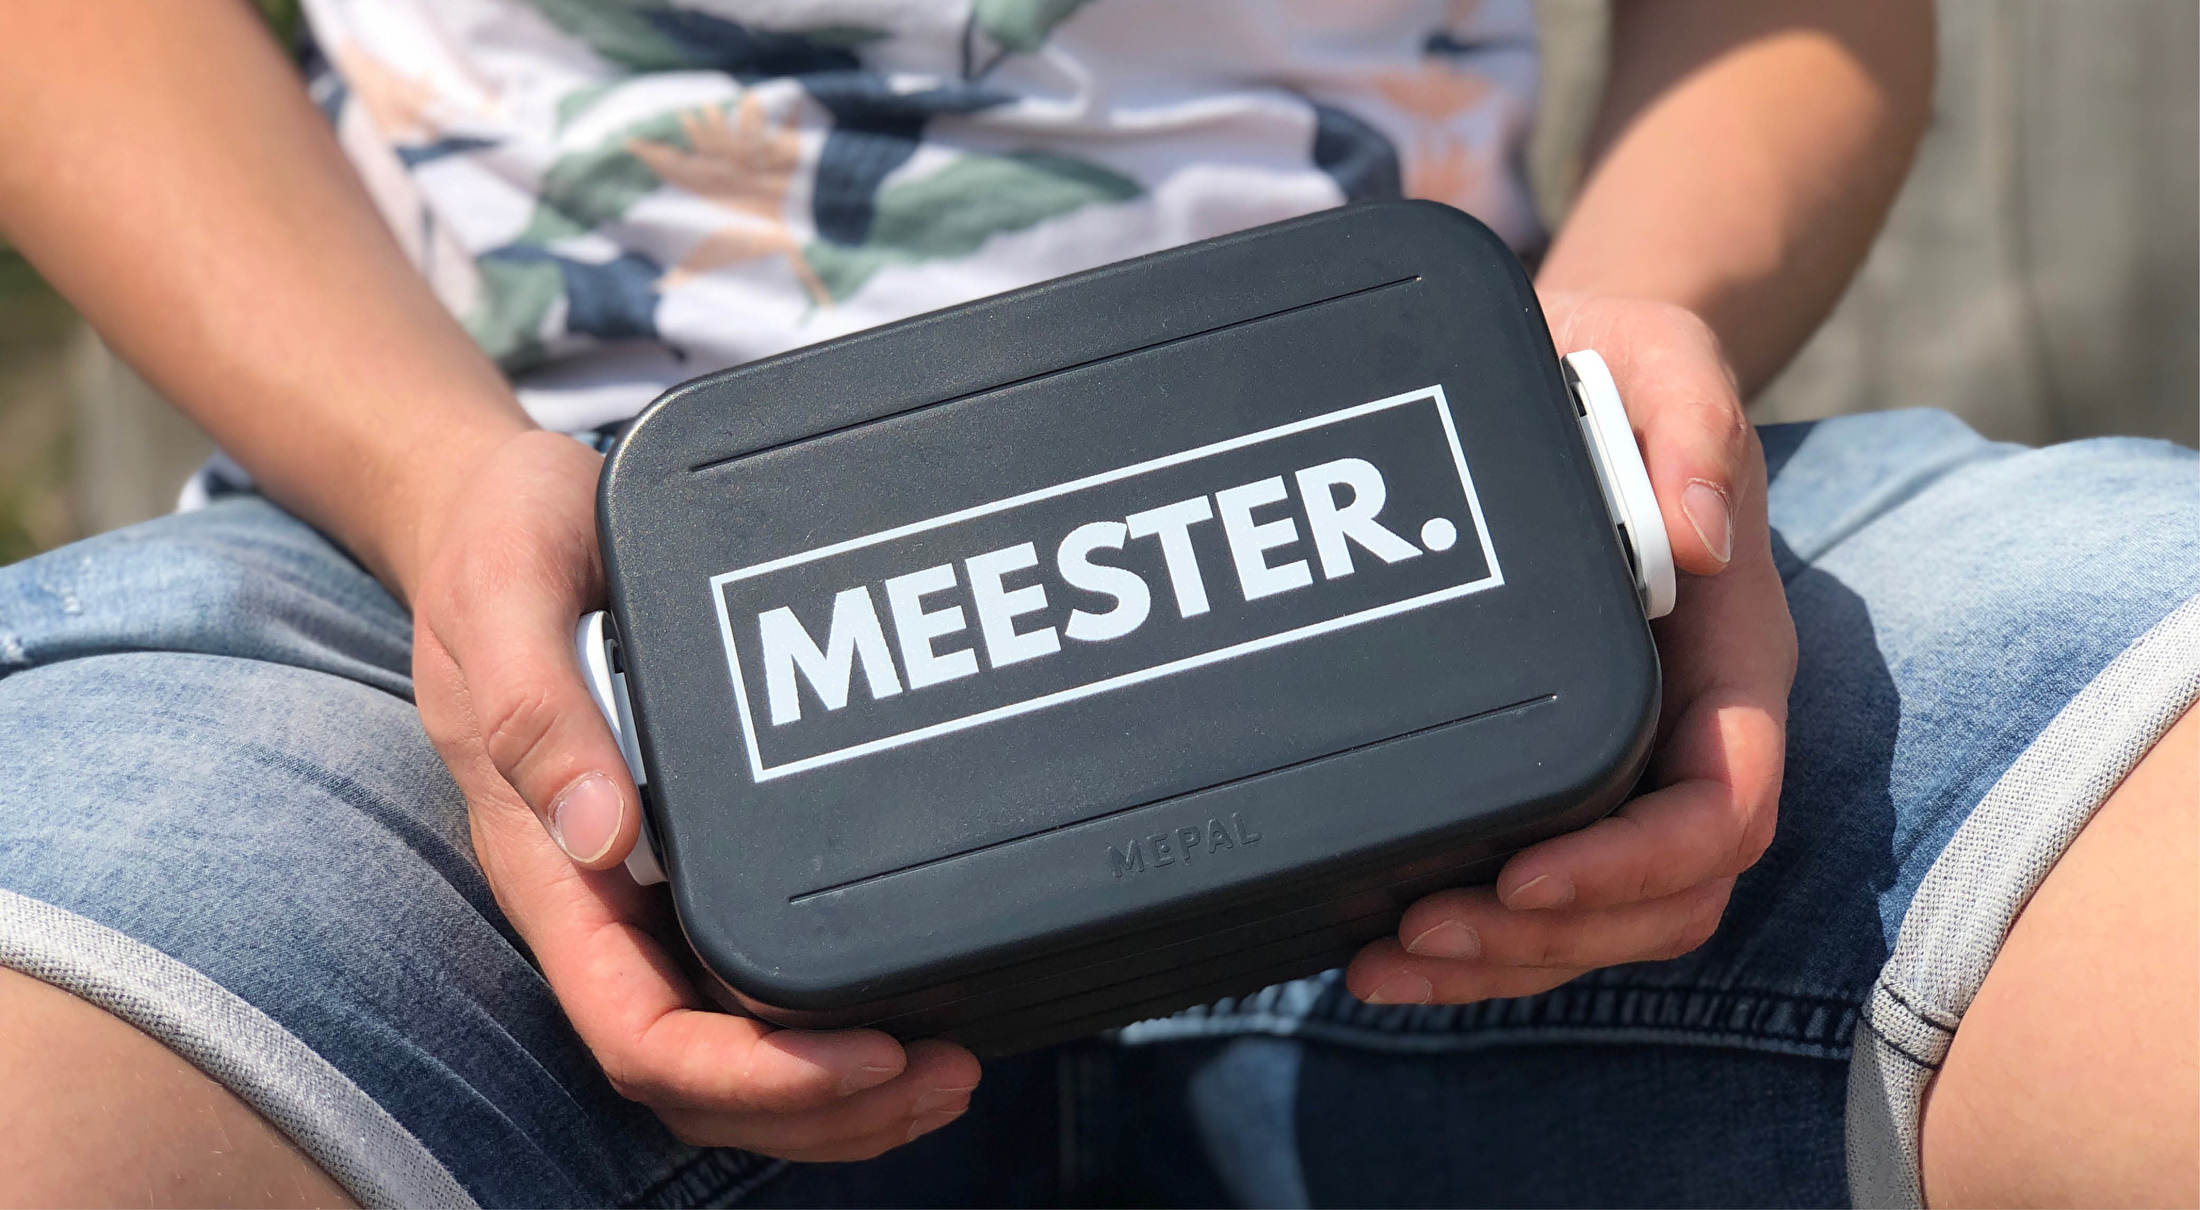 MEESTER. Lunchbox